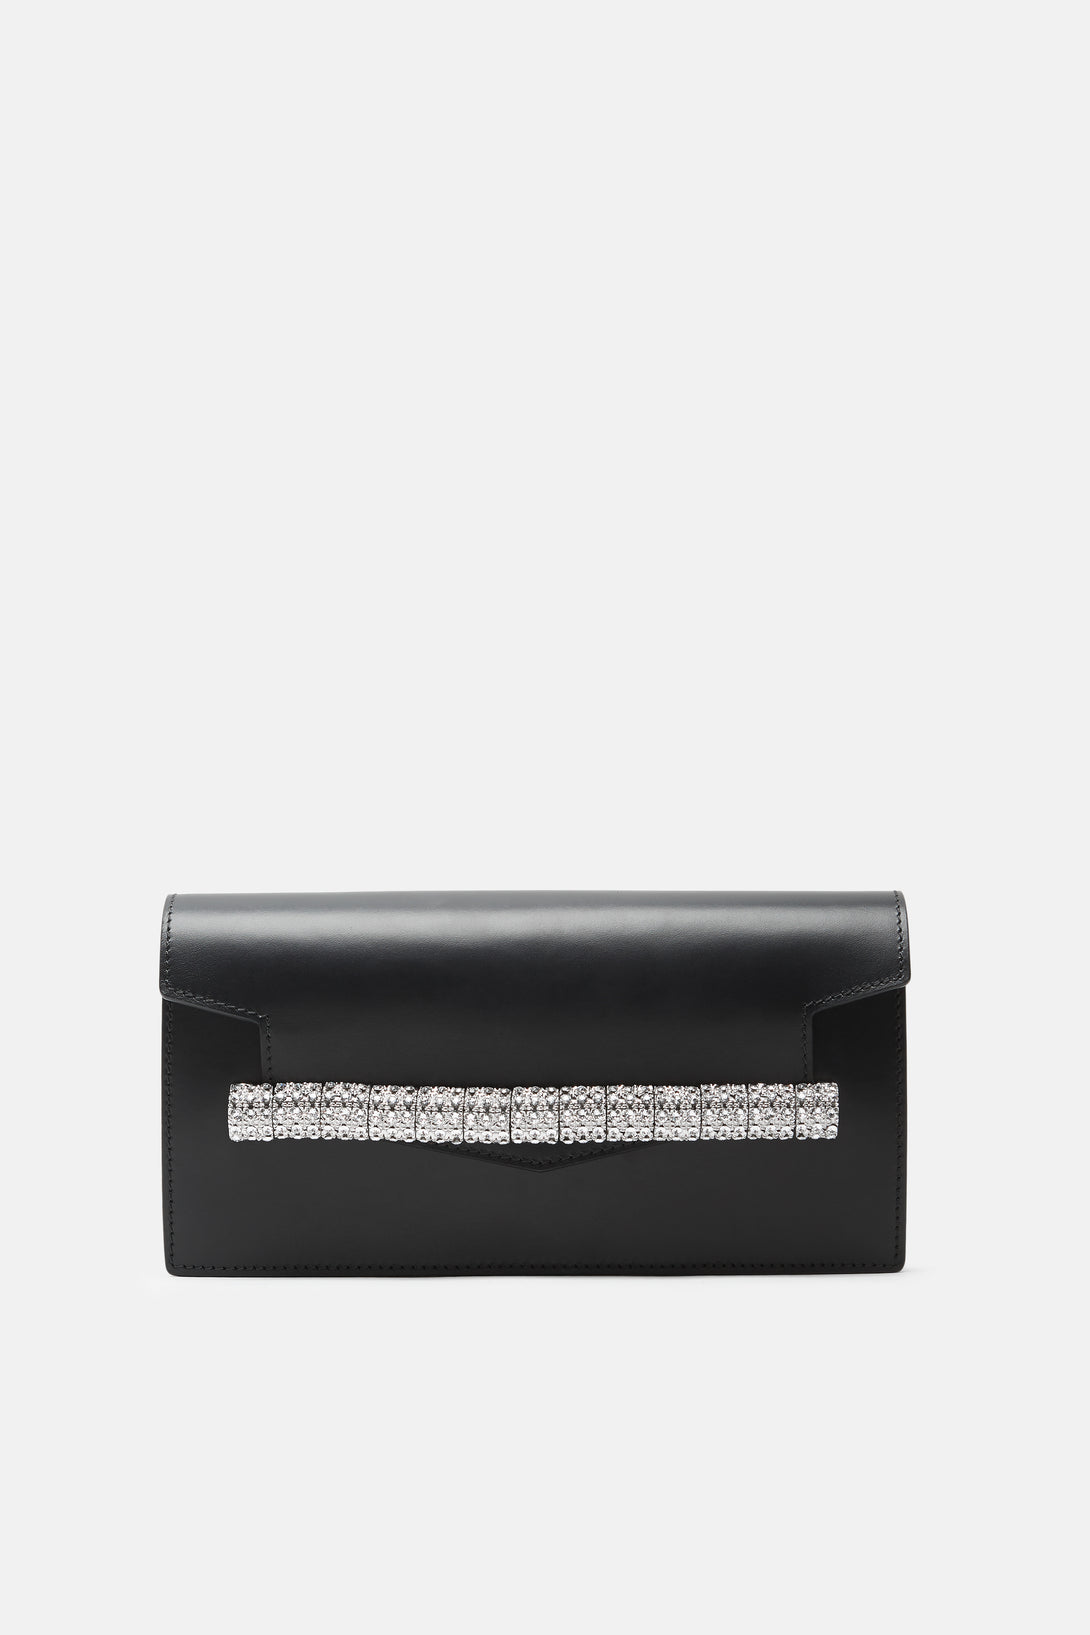 Crystal Strap Clutch - Black